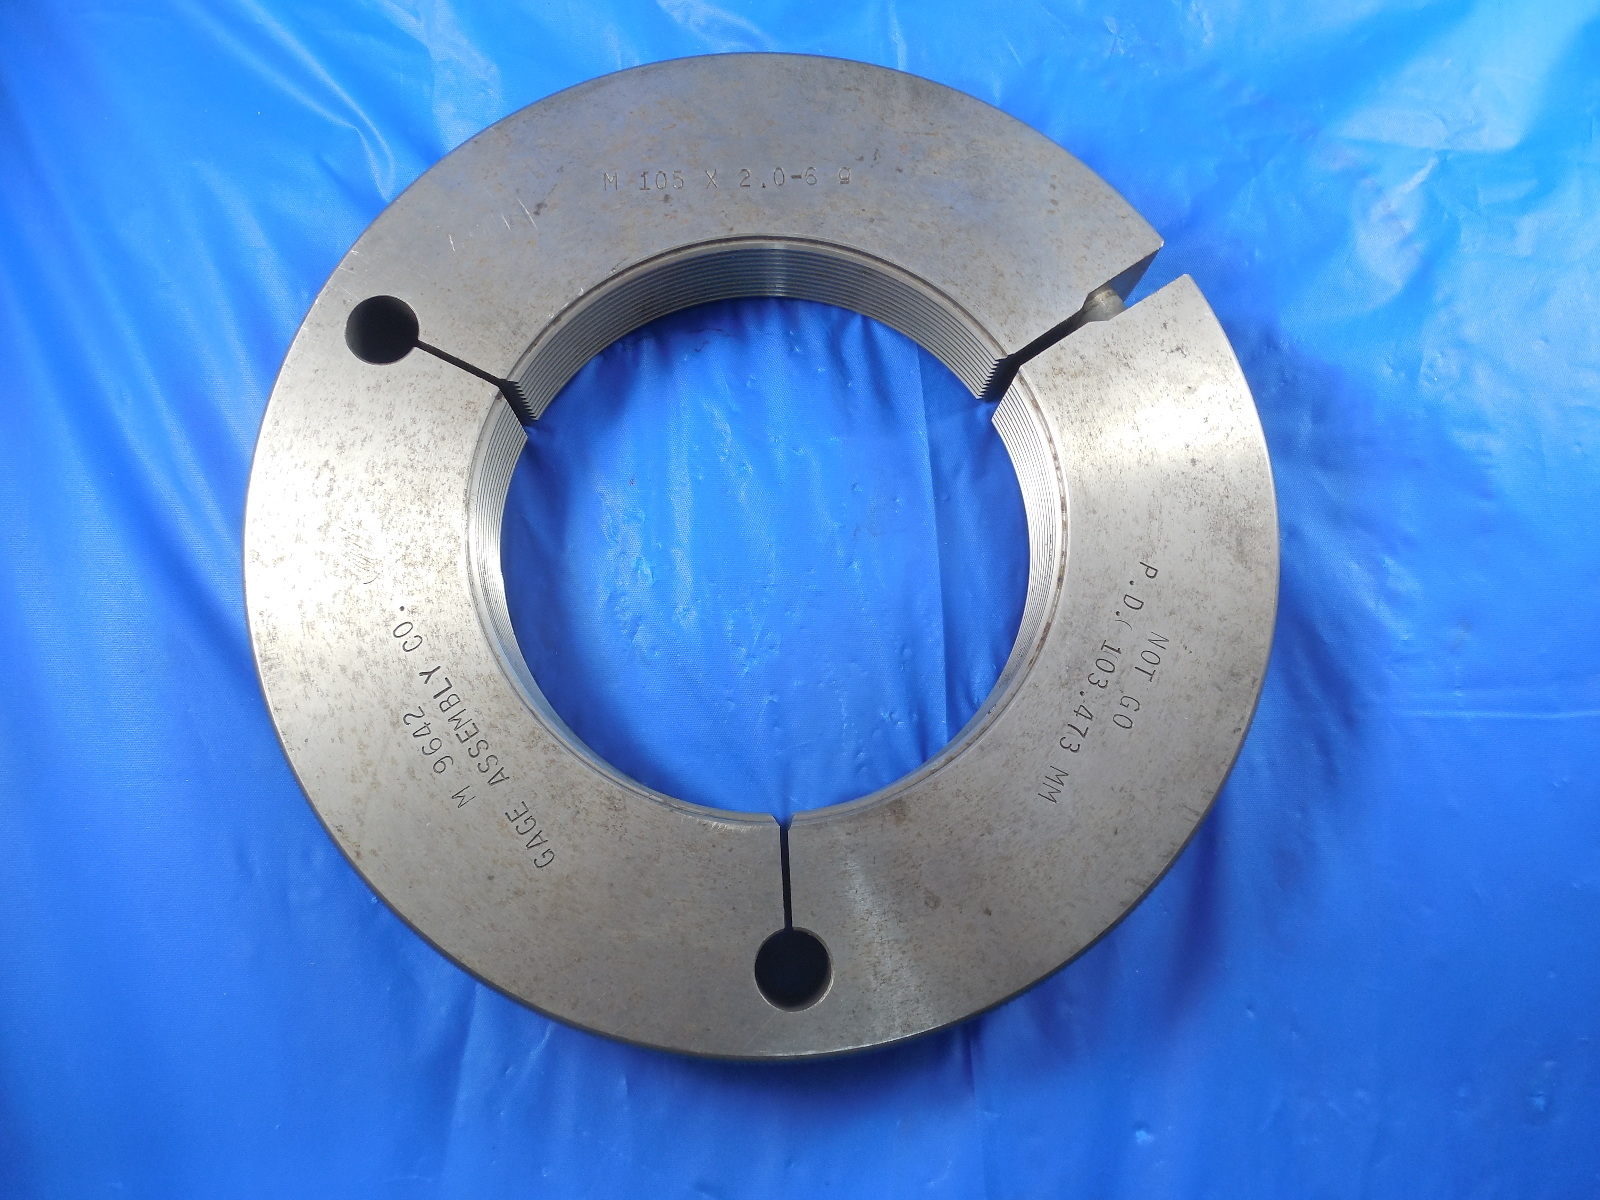 = 43.994 mm INSPECTION M45 X 1.5 6g METRIC THREAD RING GAGE 45.0 GO ONLY P.D